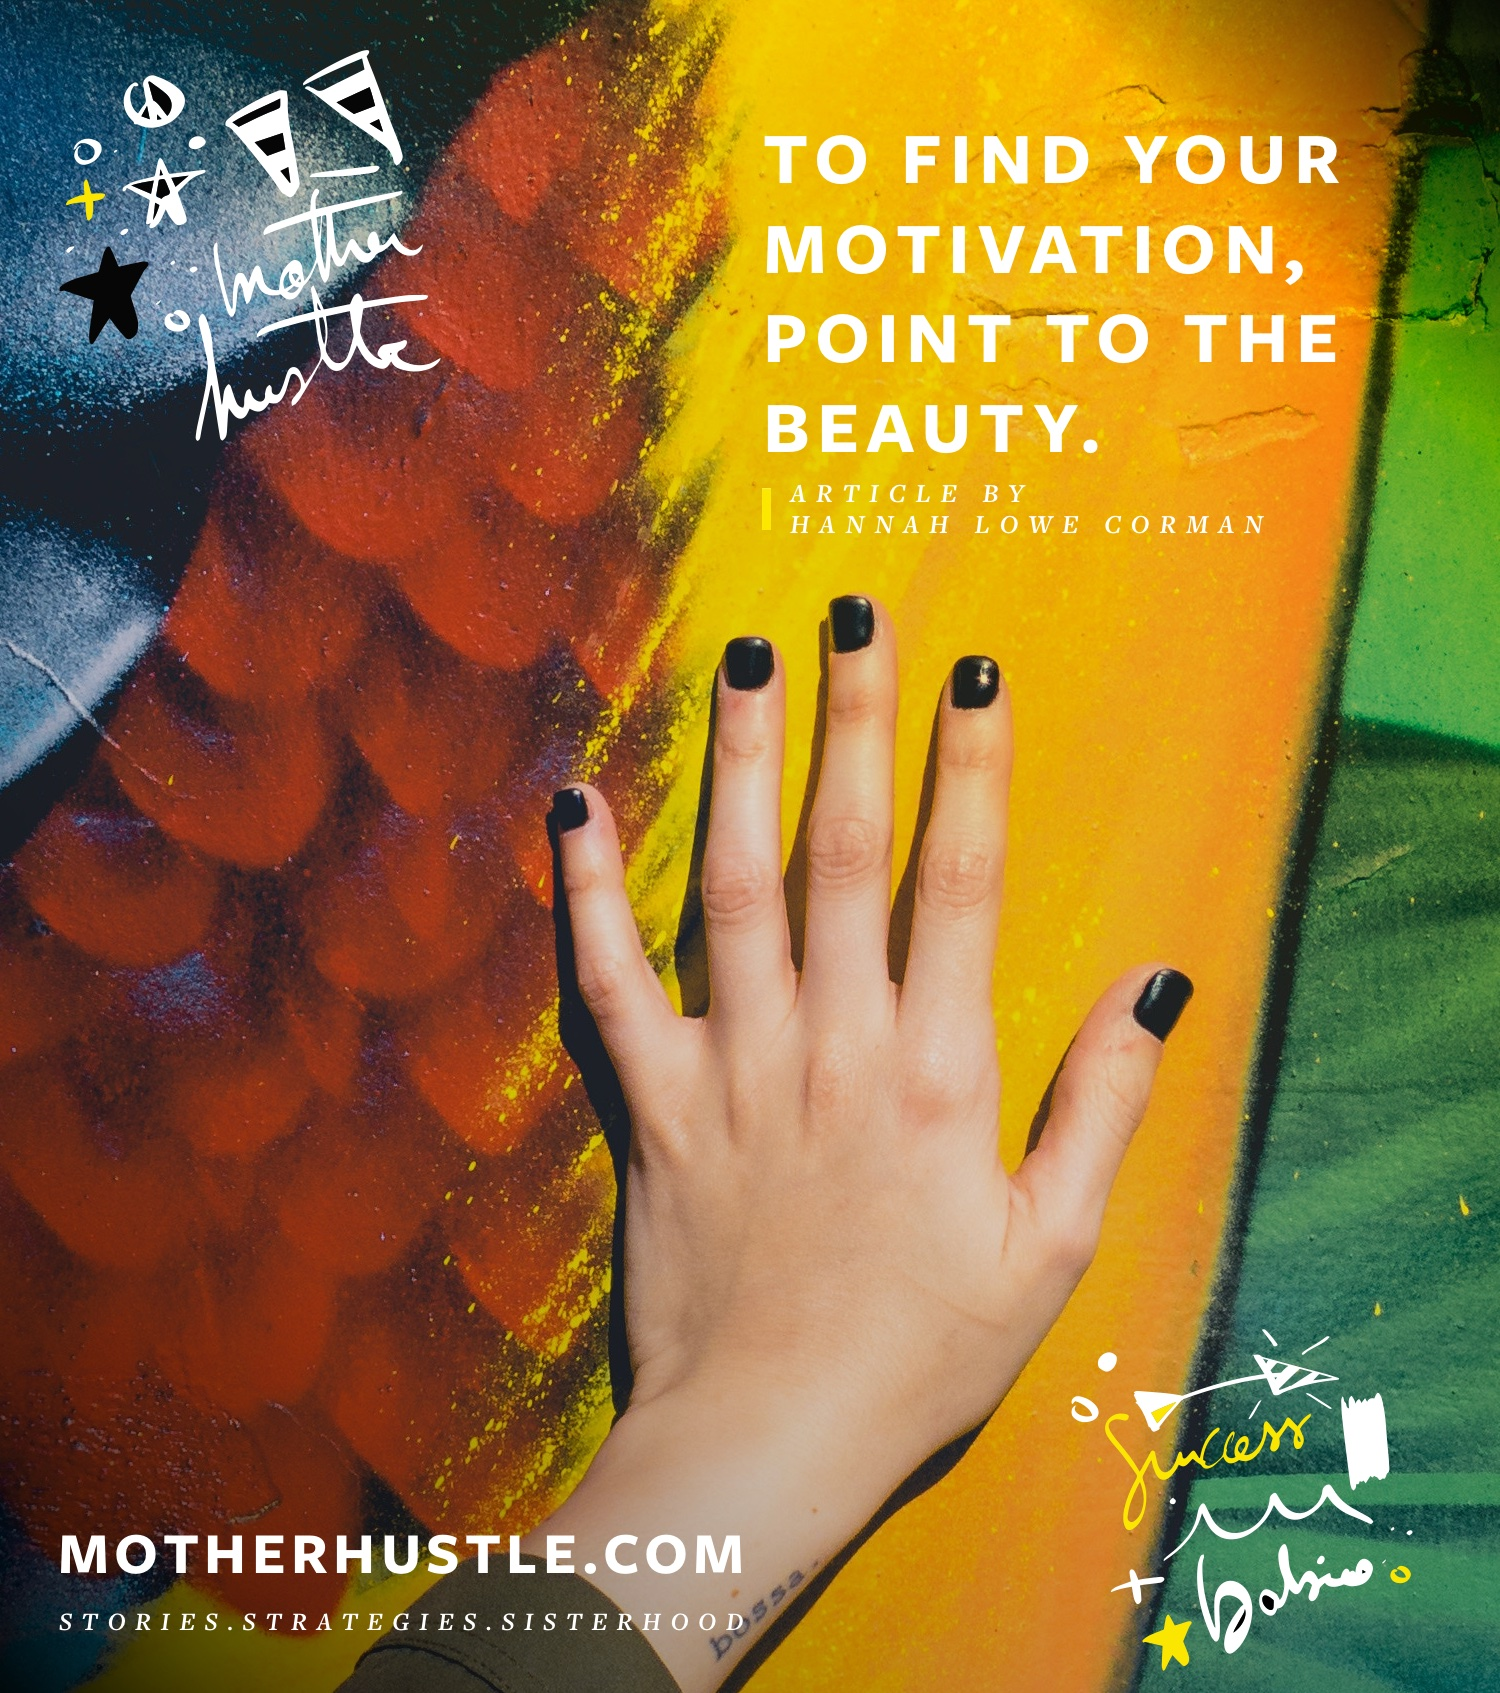 To Find Your Motivation, Point to the Beauty. - By Hannah Lowe Corman for MotherHustle